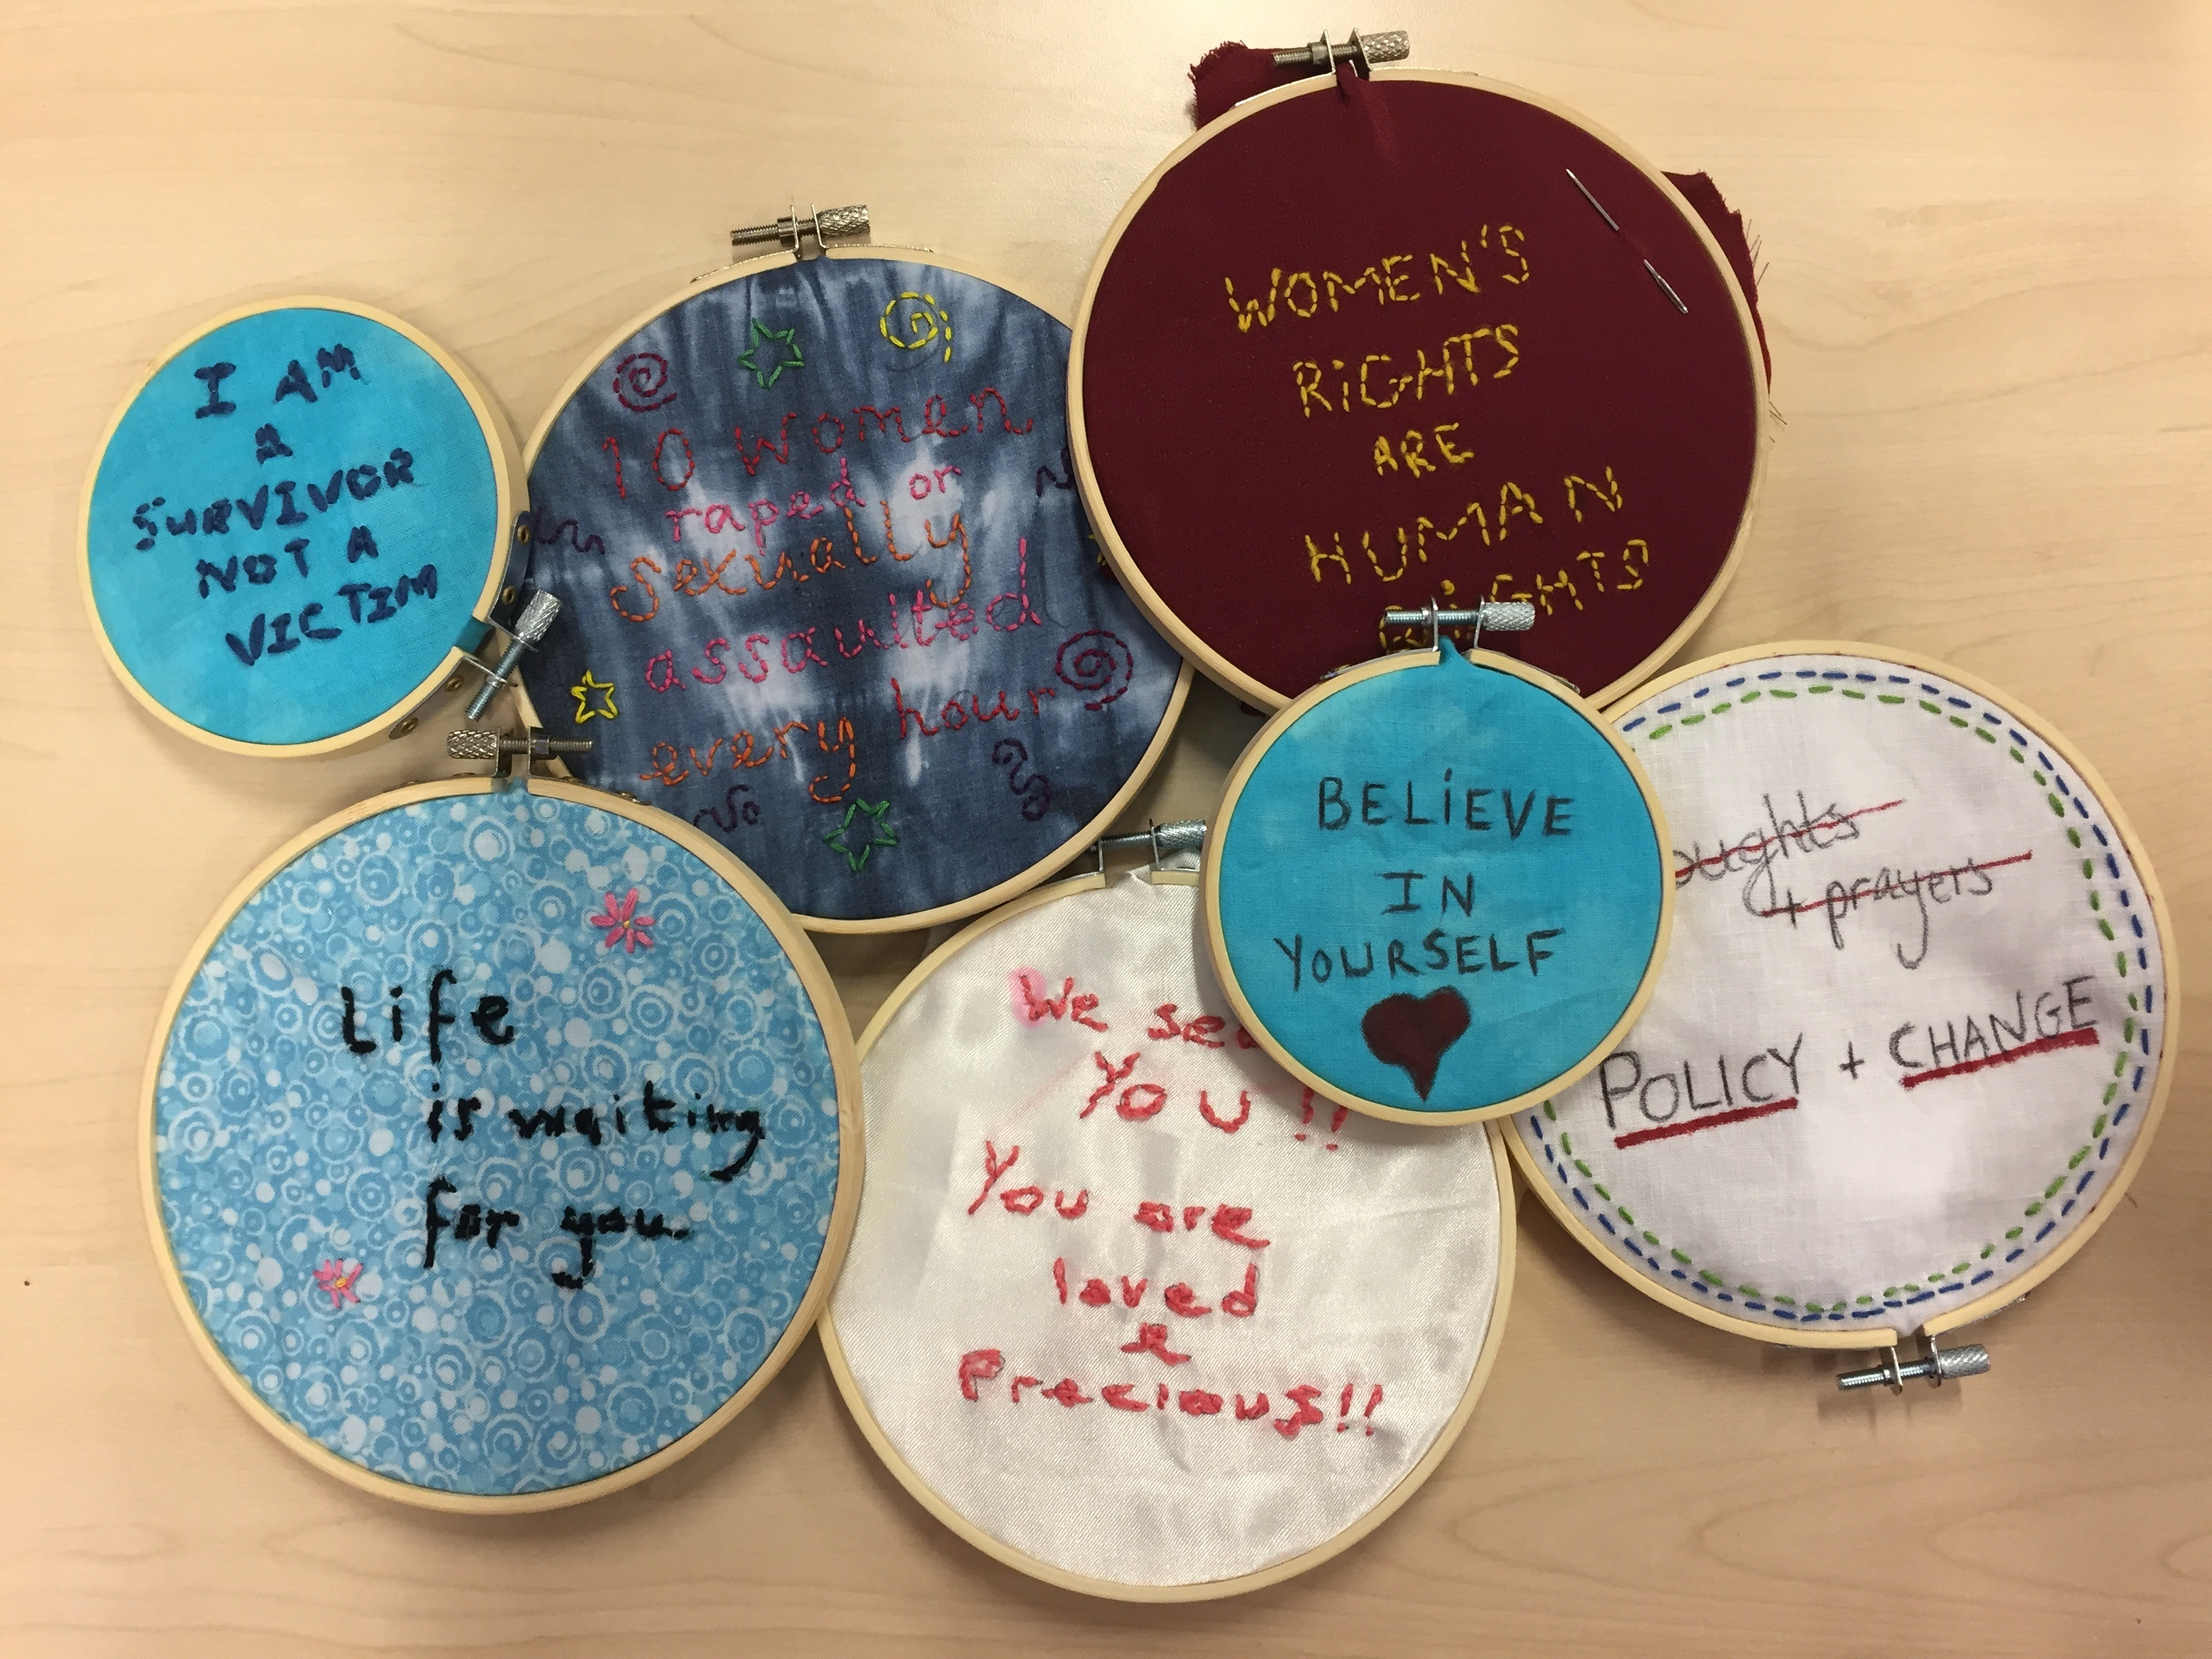 Community art project to raise awareness of domestic abuse